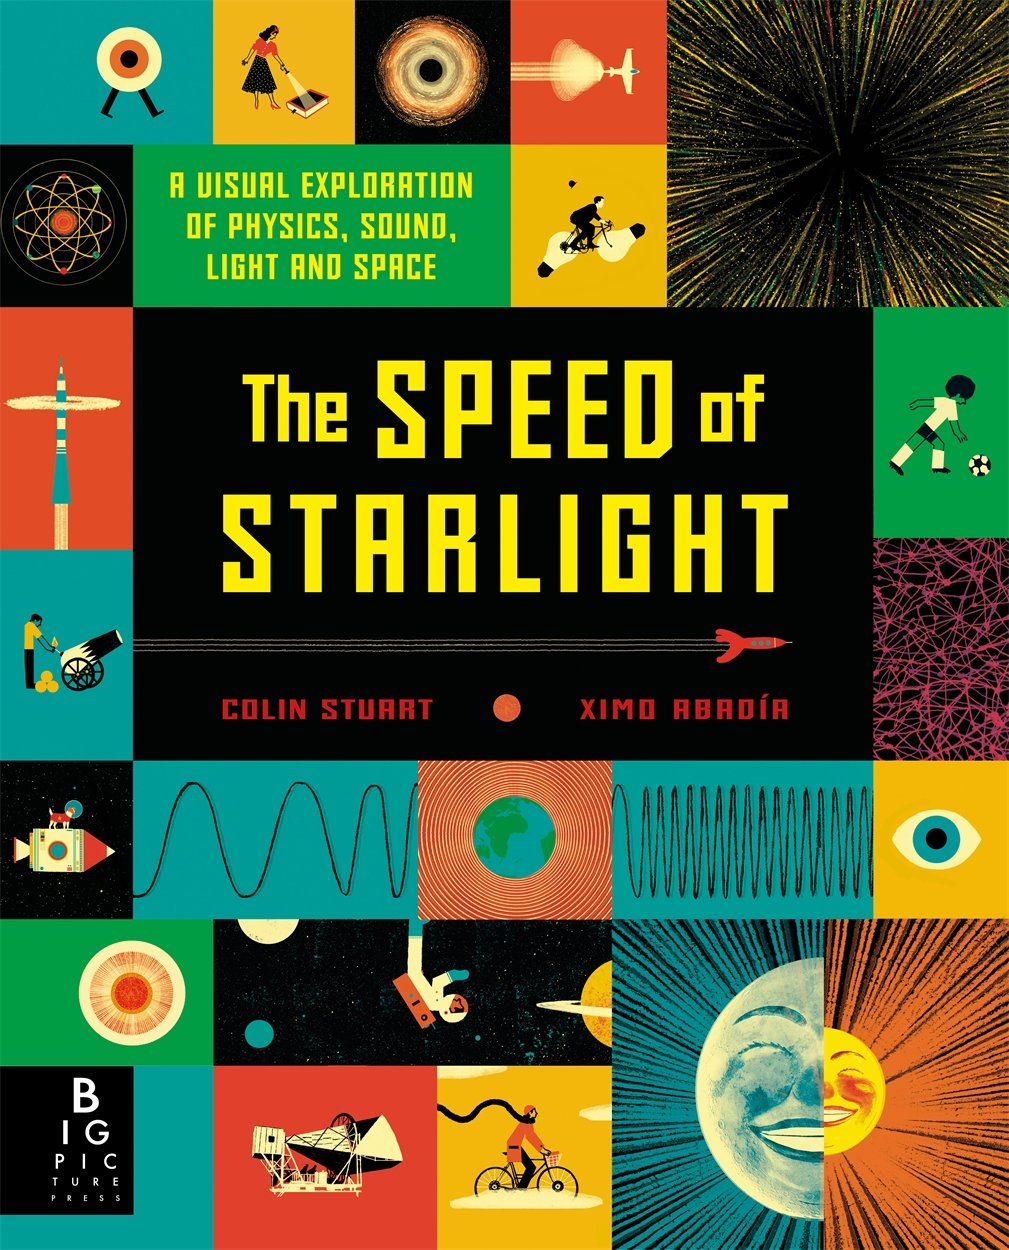 The Speed of Starlight: How Physics, Light and Sound Work PDF